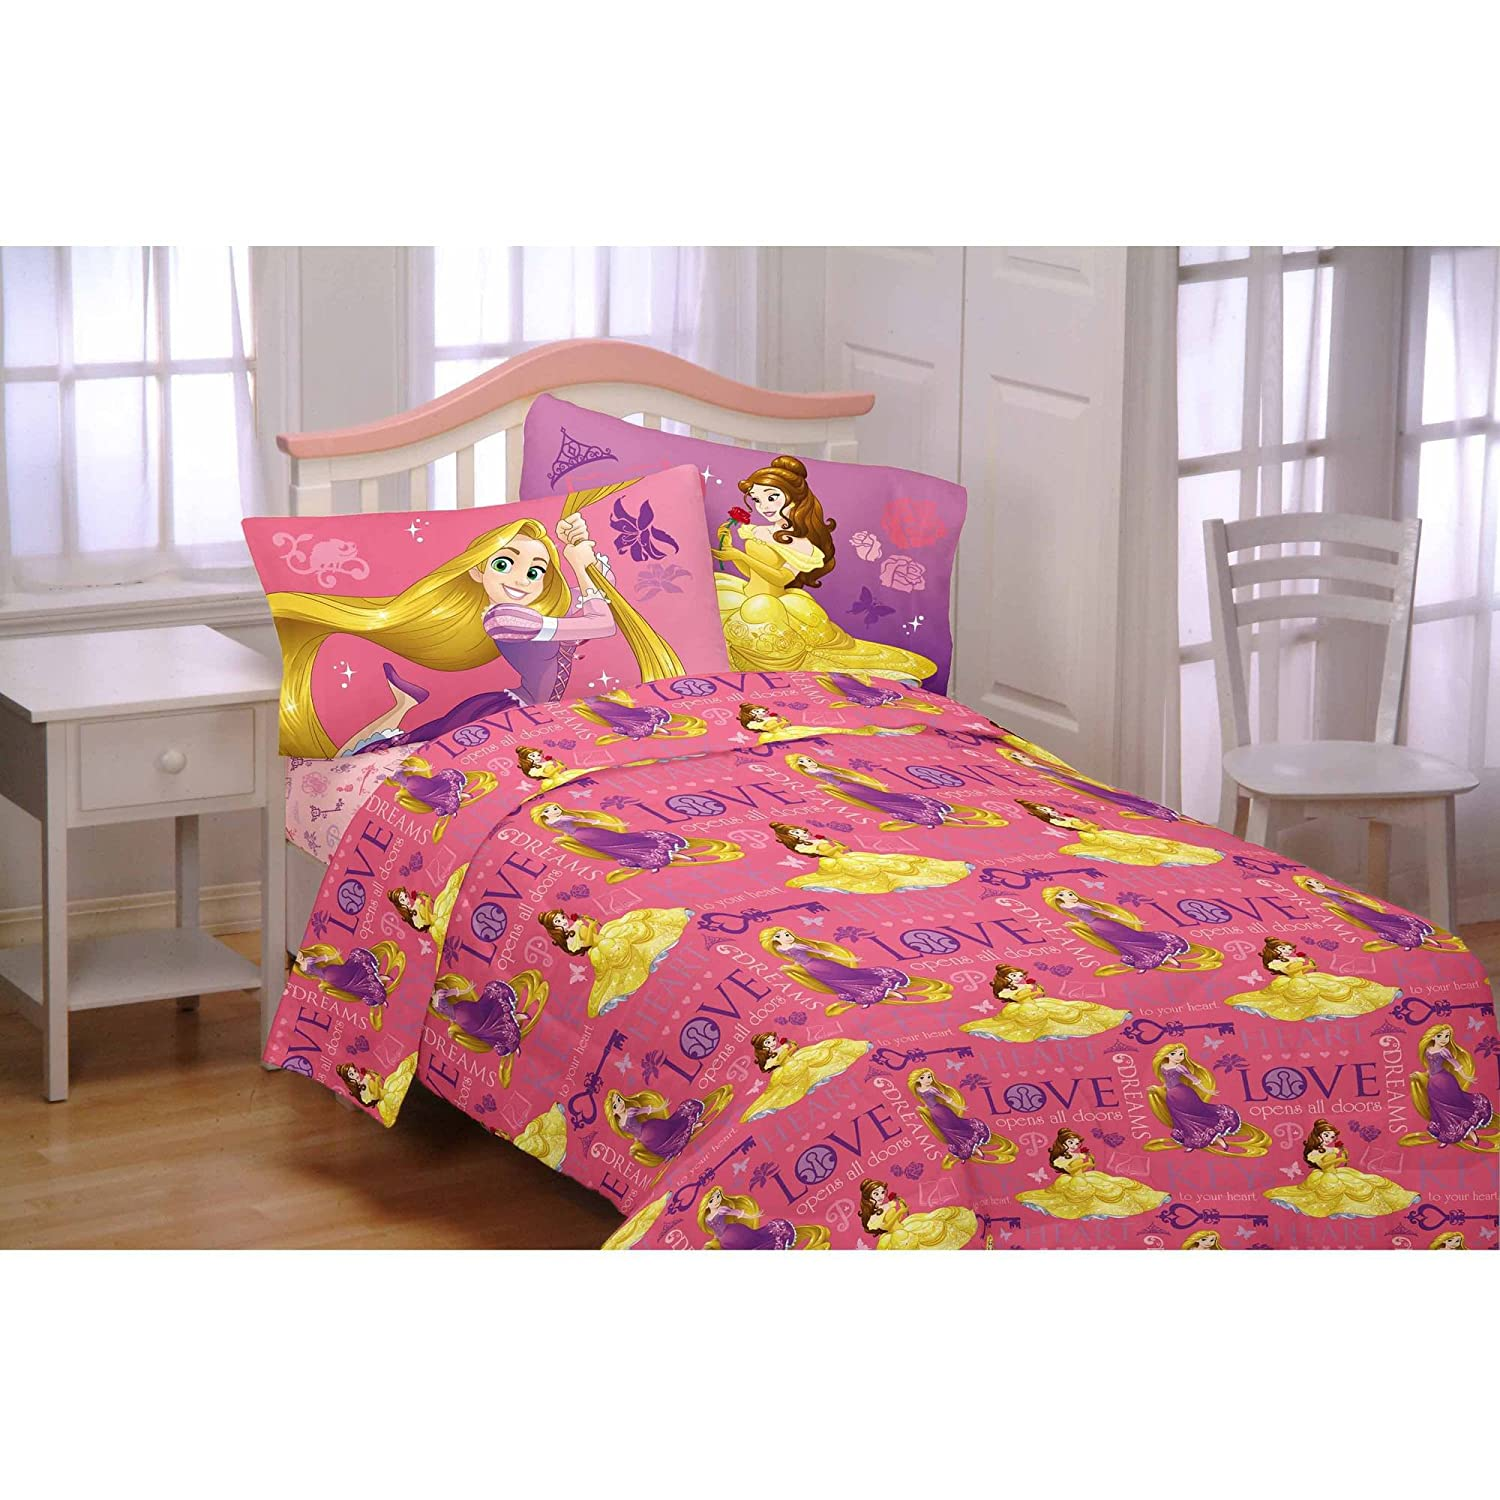 Disney Princess Flannel Sheet Set (Twin Size Crowned By Friendship) 5925508